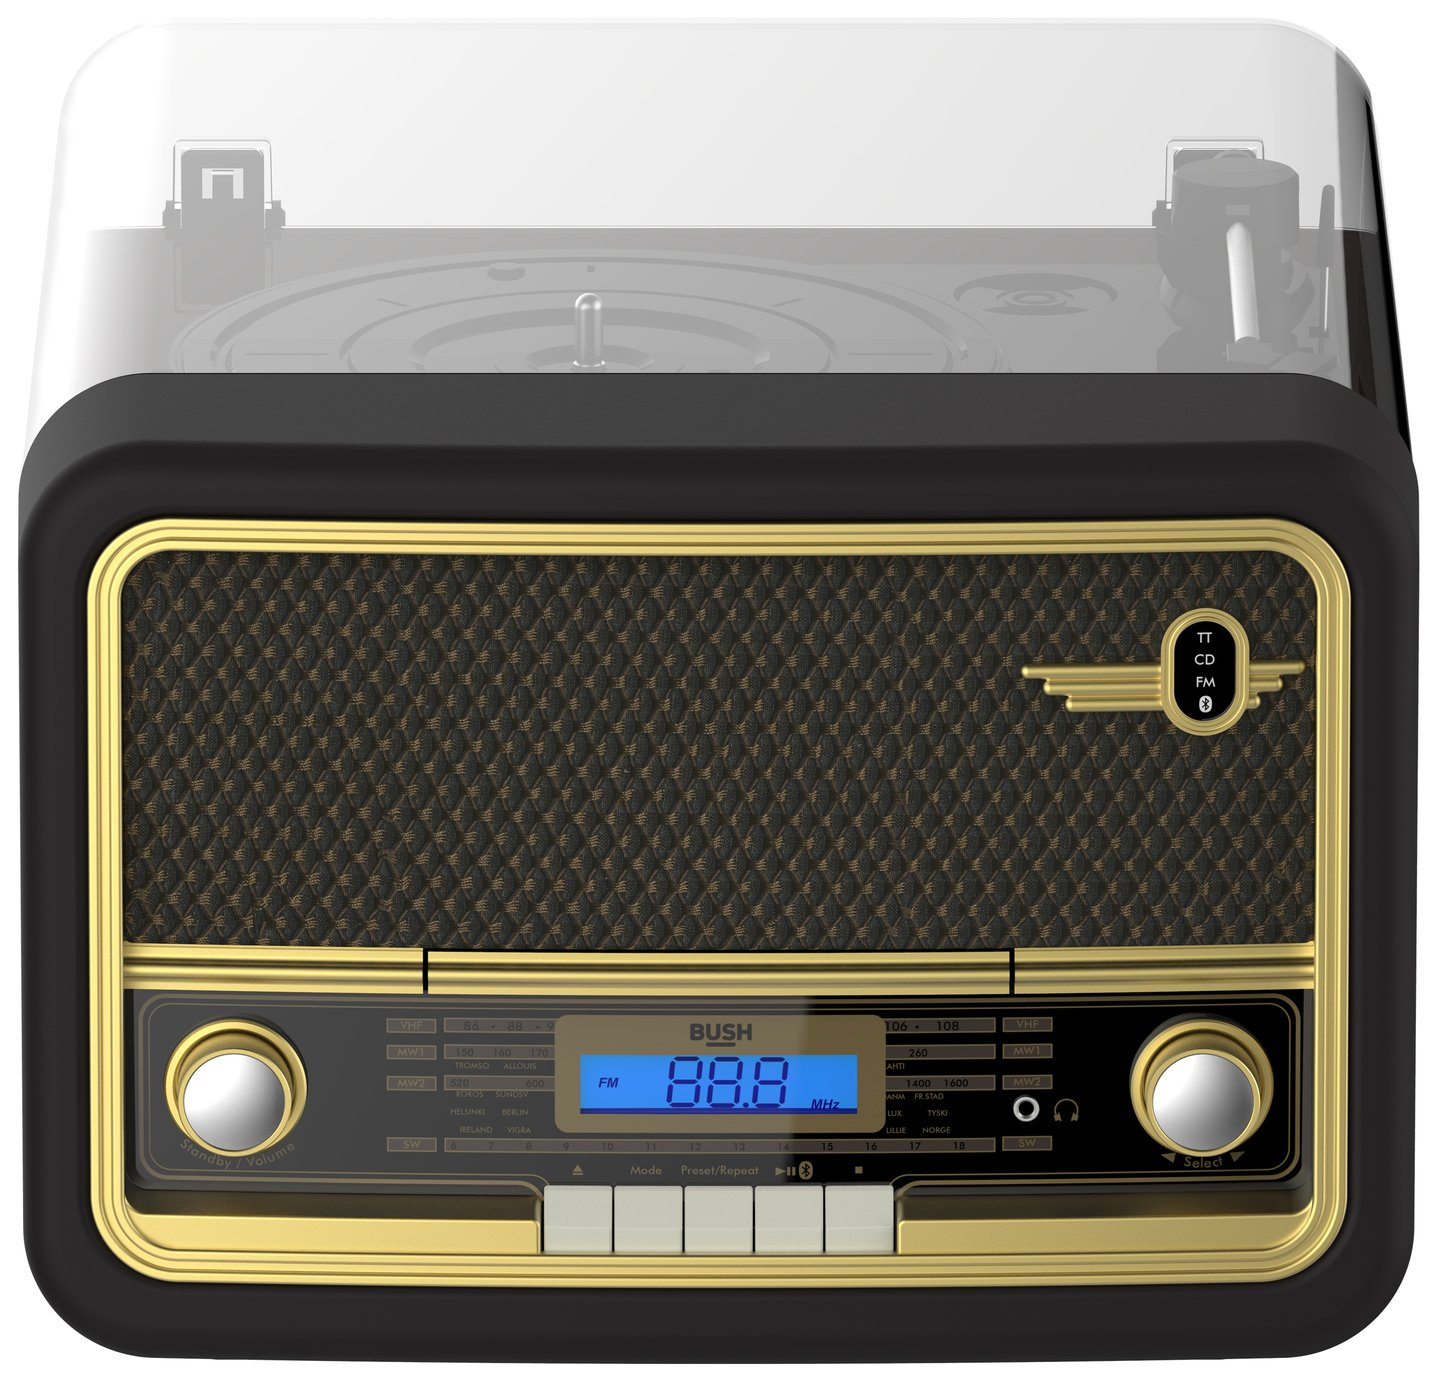 Bush Classic Retro Record Player - Black / Gold